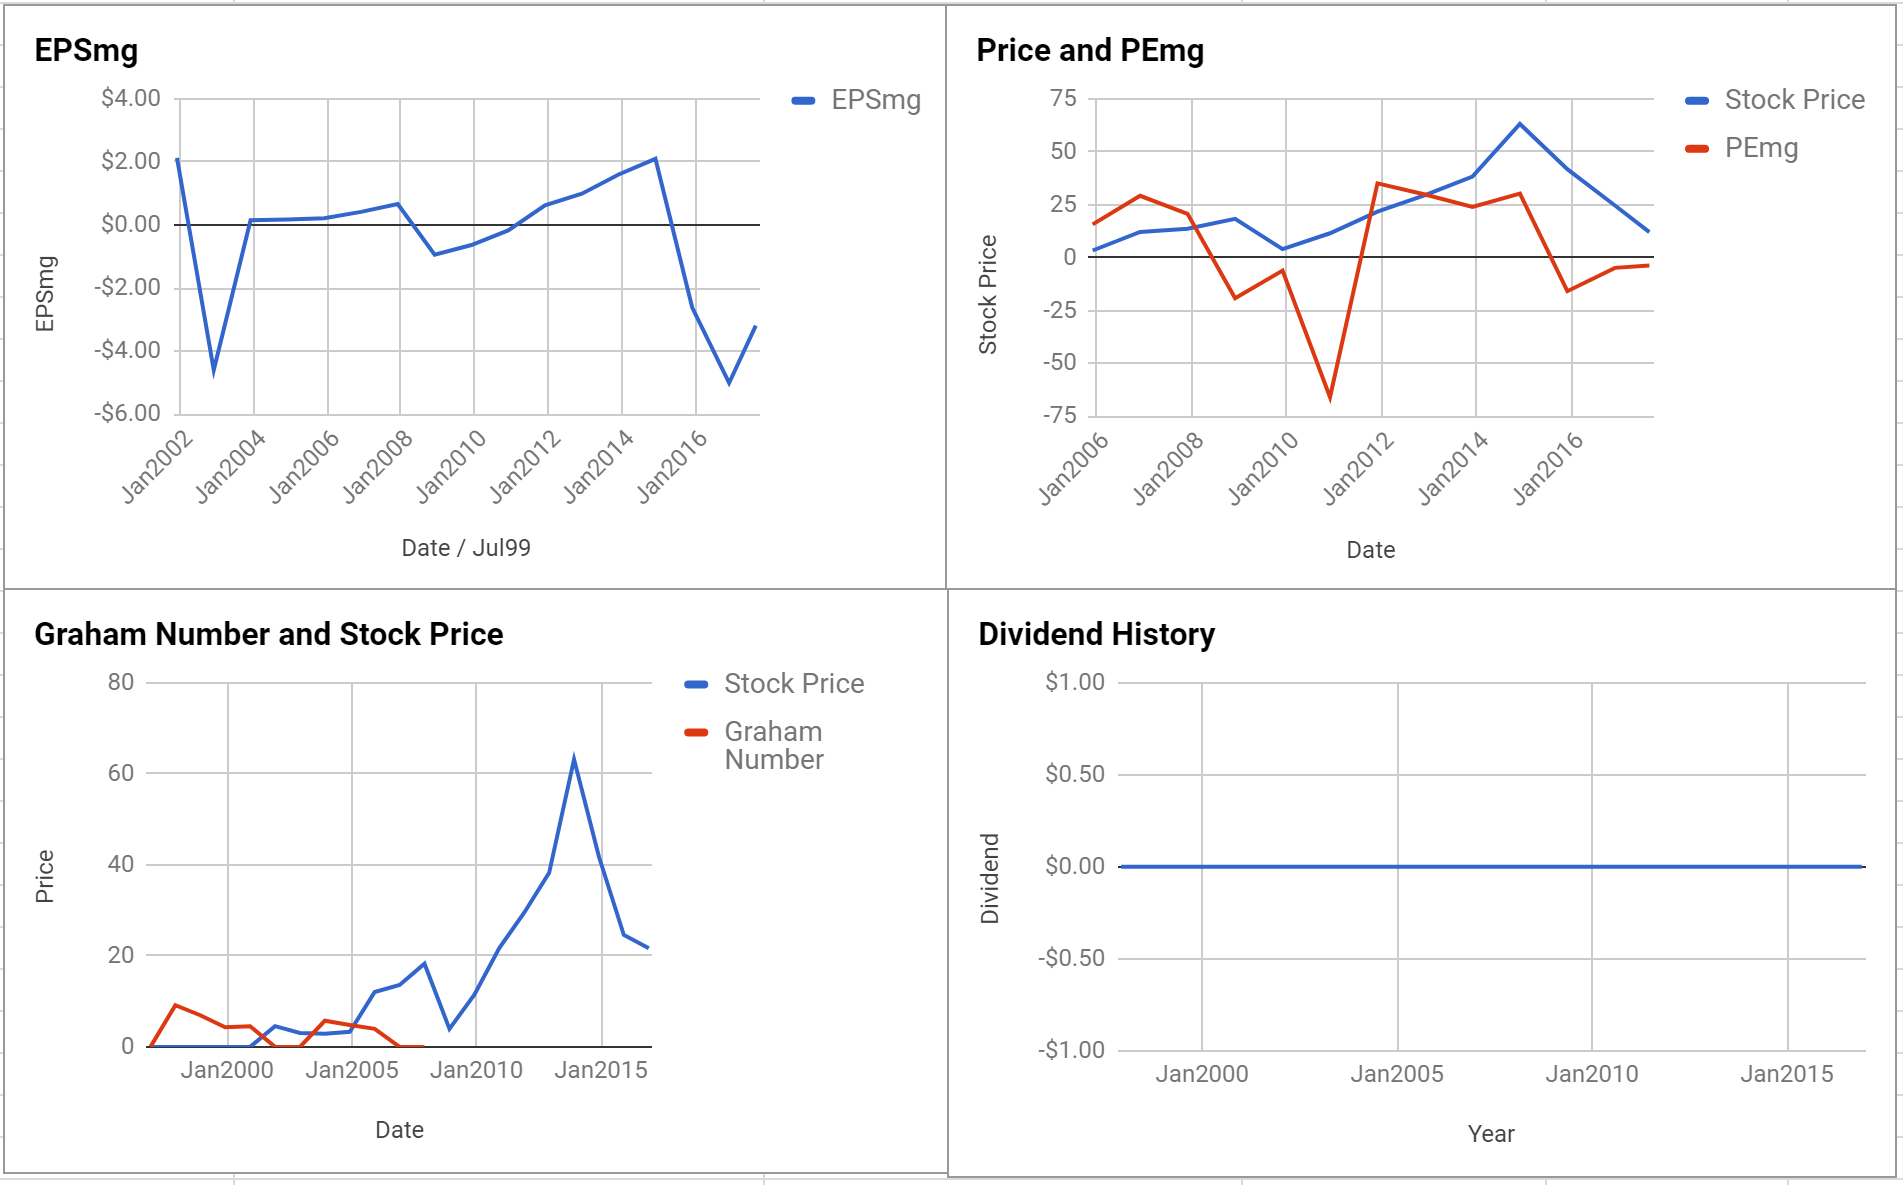 Gulfport Energy Corp Valuation – Initial Coverage $GPOR